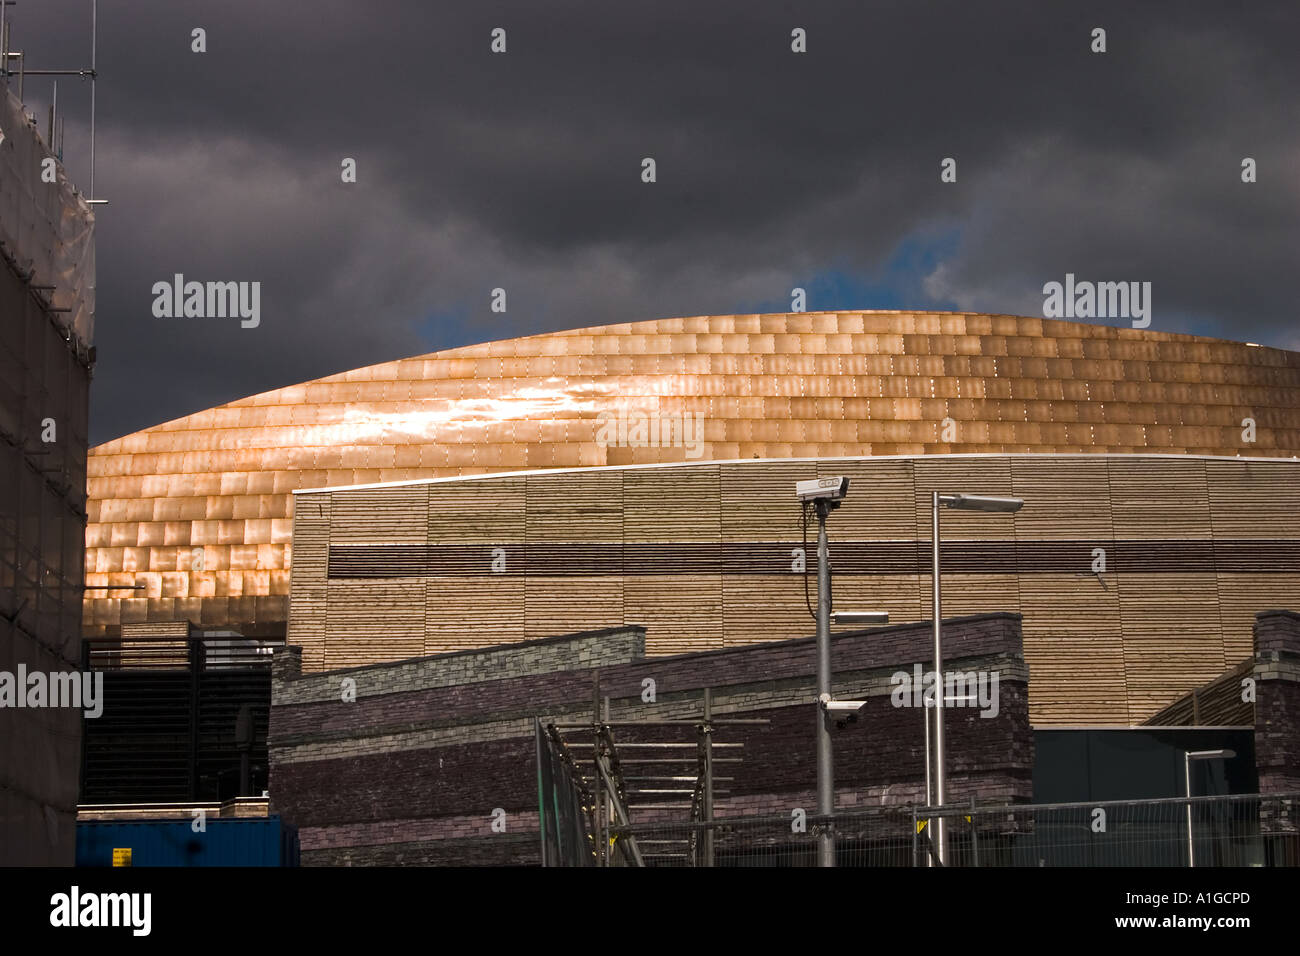 Sunlight reflecting off the stainless steel dome of the Wales Millenium Centre, Cardiff Bay, SE Wales UK. - Stock Image